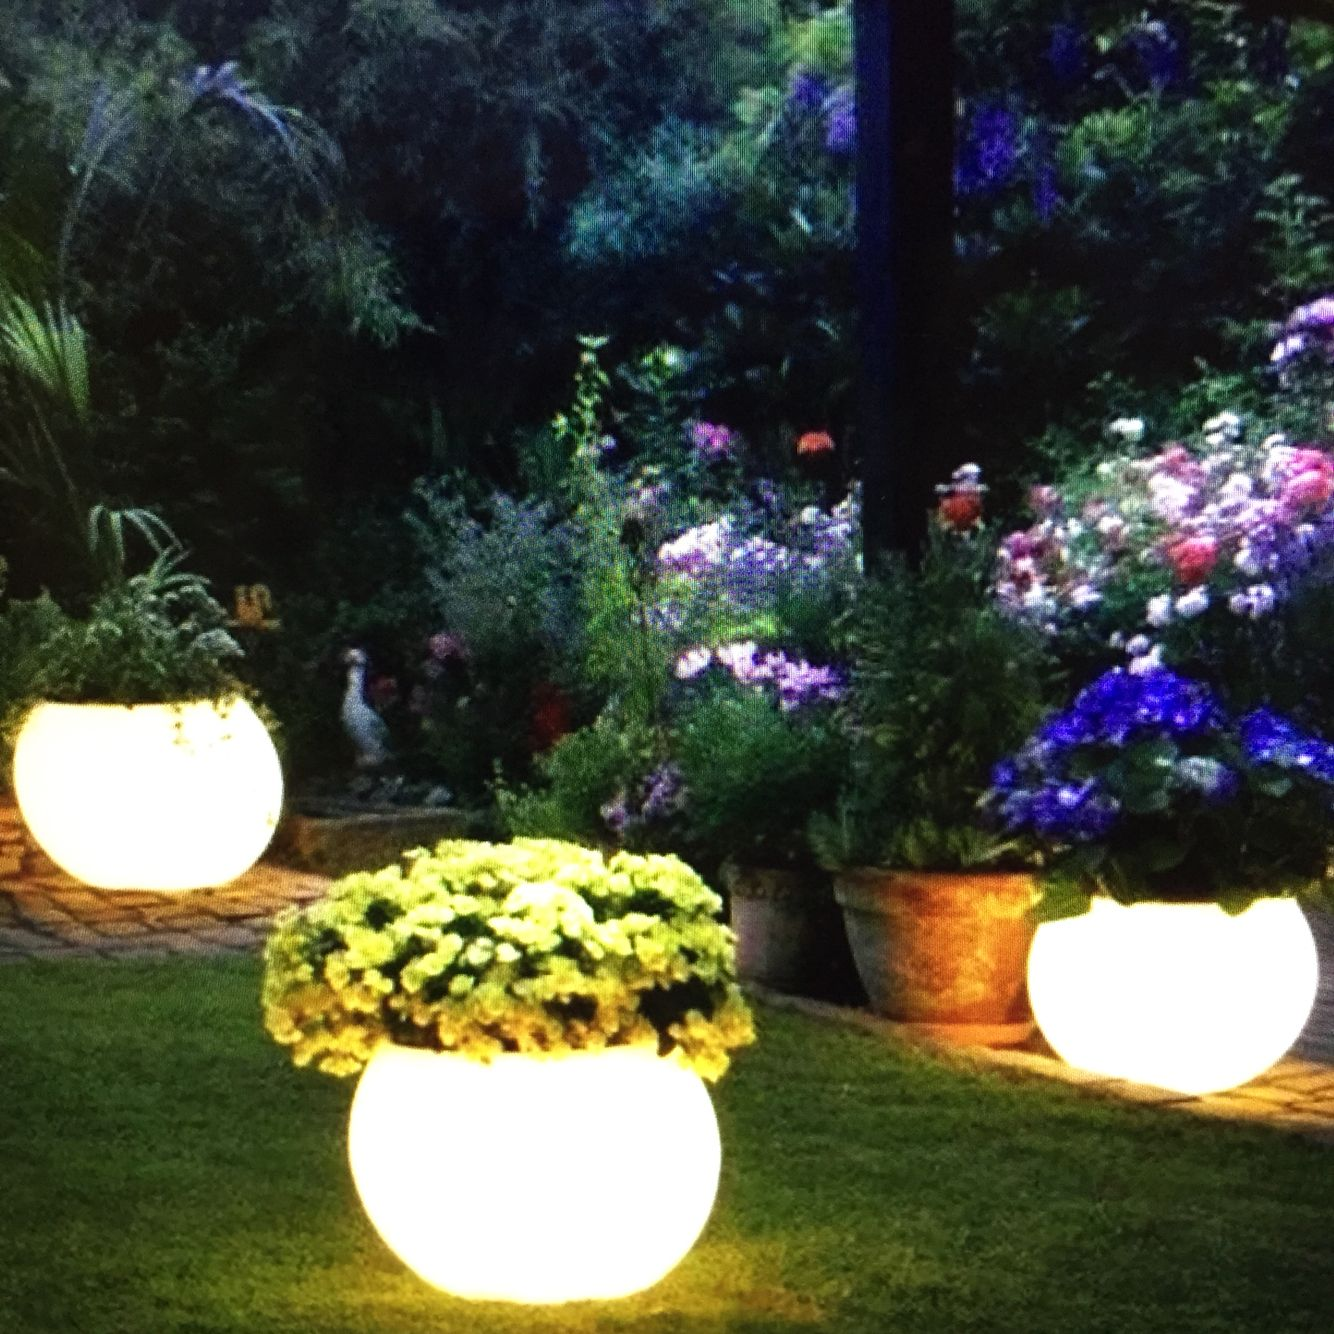 Buy a flower pot that you really like and use Rustoleum's Glow-in-the-dark paint to paint the pot. During the day, the paint will absorb the sunlight and at night the pots will glow!